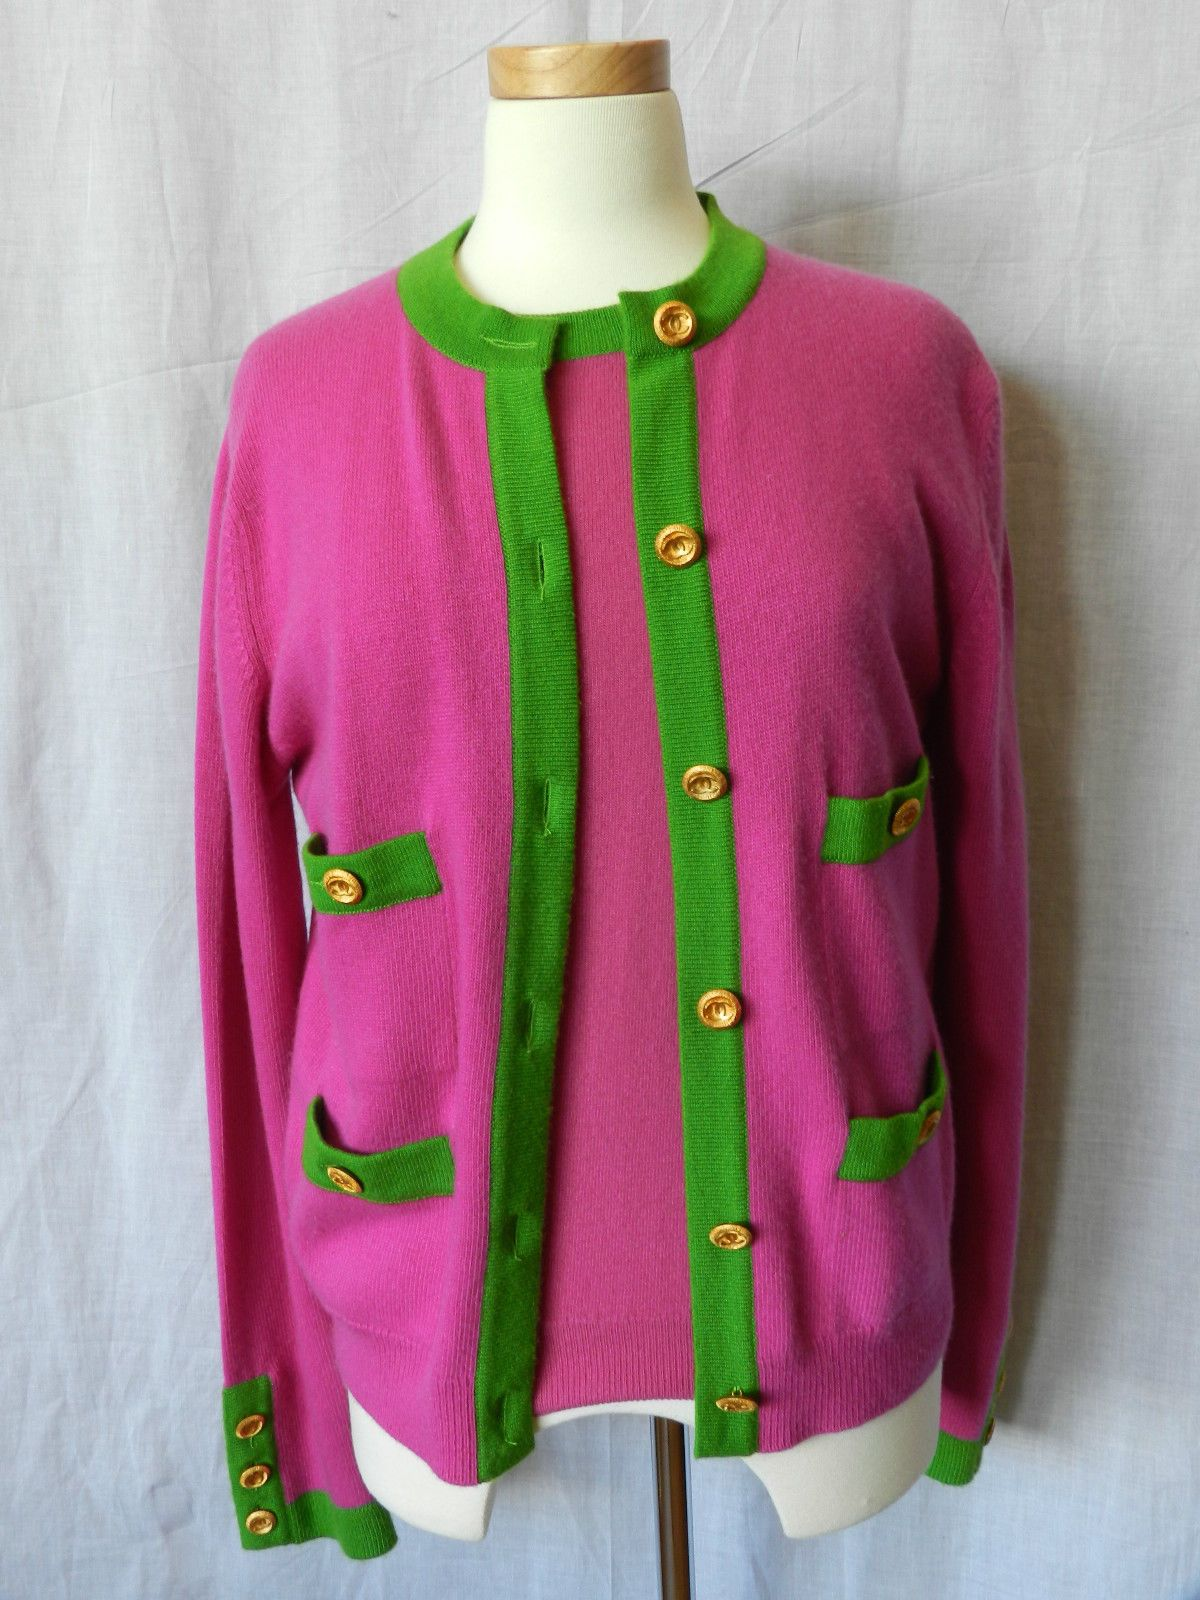 Chanel pink and green sweater twin set | AKA | Pinterest | Chanel ...